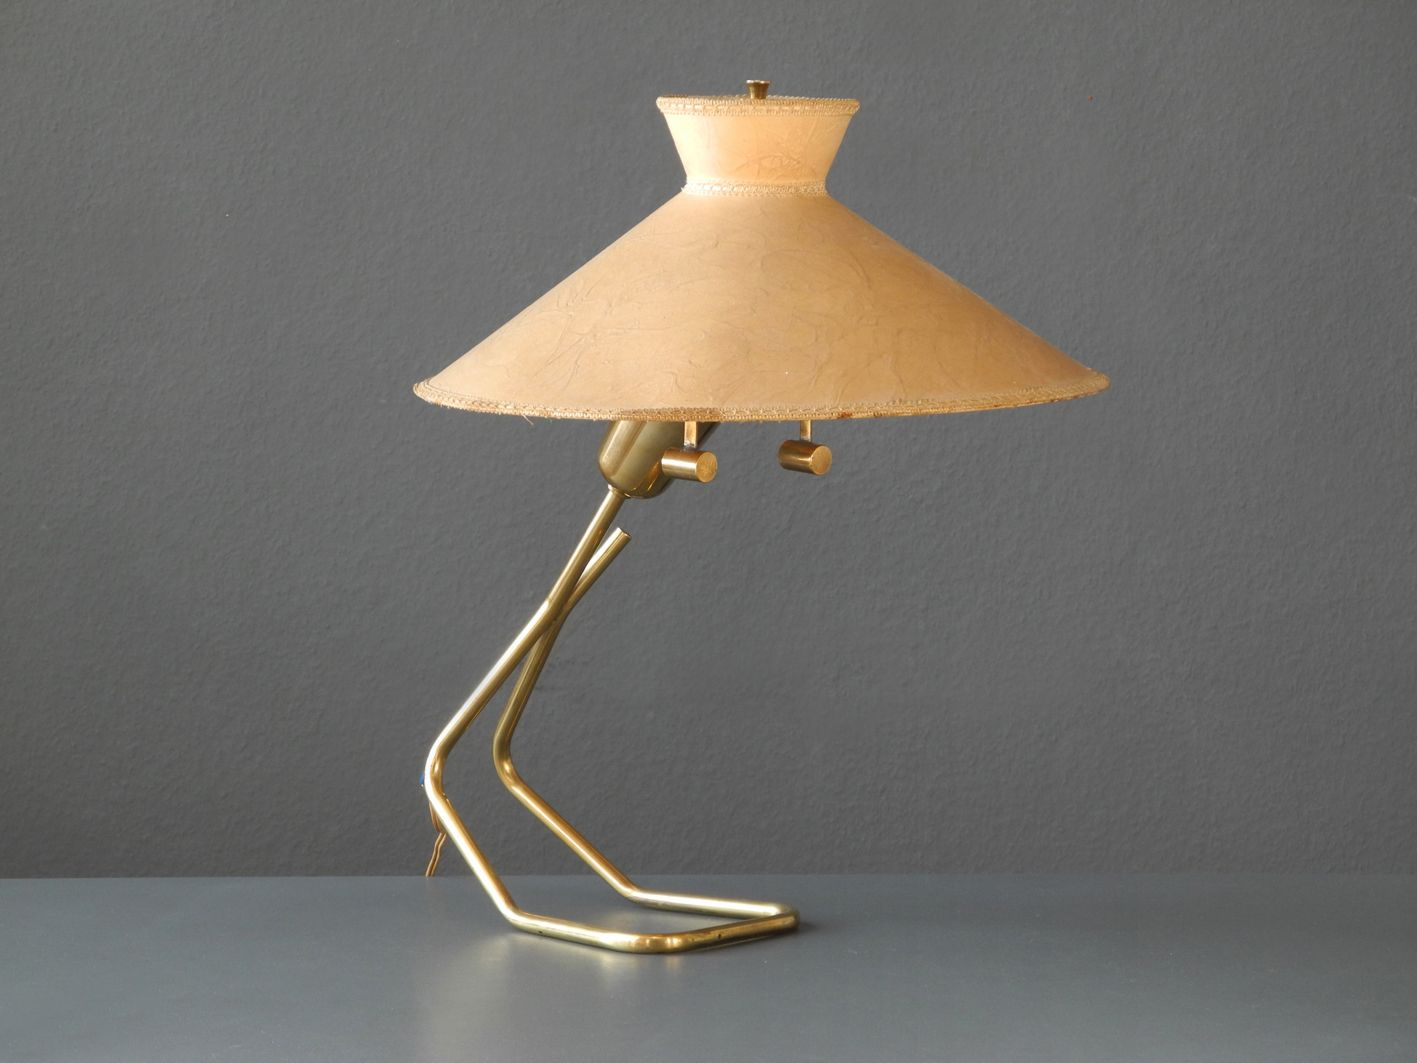 Large brass table lamp with vellum shade from vereinigte werksttten large brass table lamp with vellum shade from vereinigte werksttten 1950s for sale at pamono aloadofball Choice Image